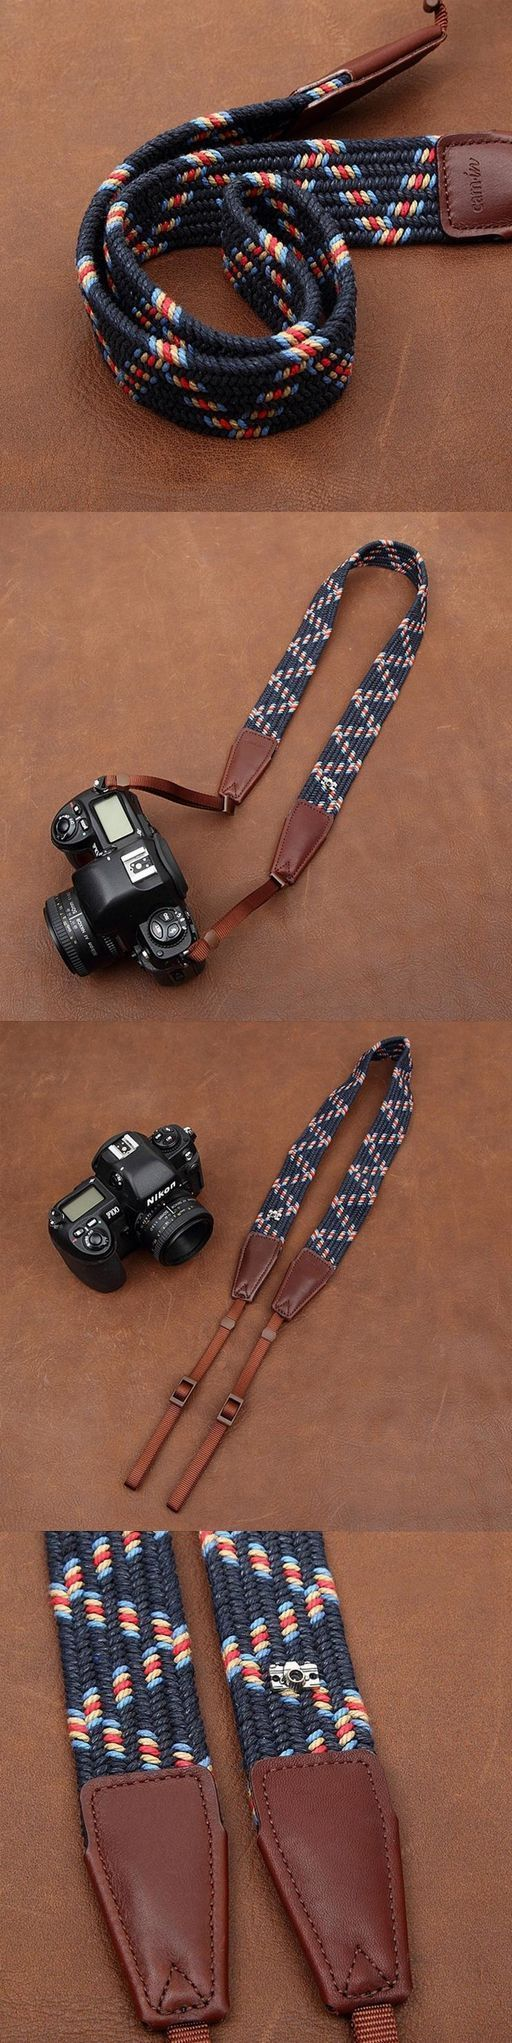 21 best SONY a6000 images on Pinterest | Sony a6000, Lenses and ...